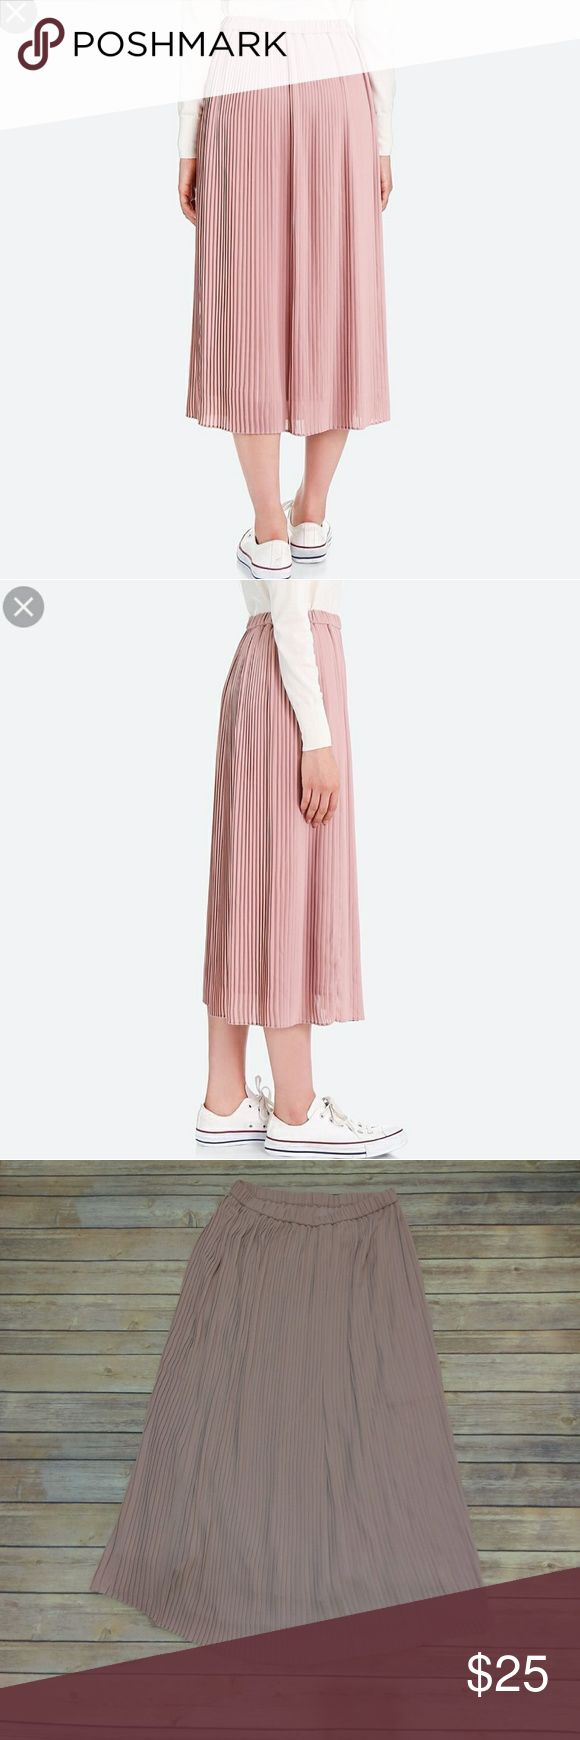 UNIQLO MAXI PLEATED SKIRT Beautiful lavender mauve color Maxi skirt Pleated all the way down Elastic waistband and includes lining underneath  Brand new never worn ! Uniqlo Skirts Maxi